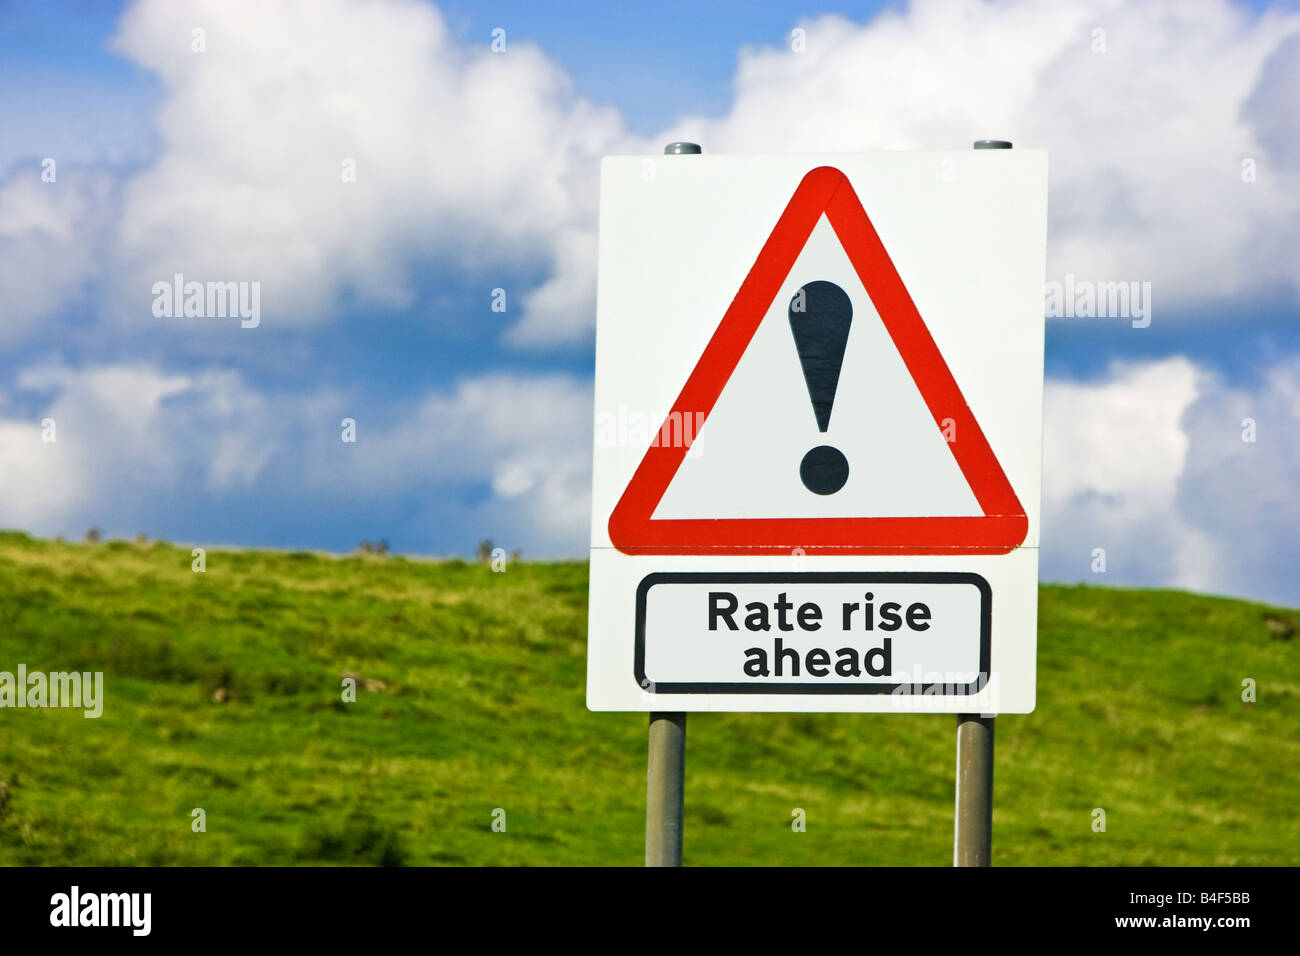 Financial concept warning of interest rate rise ahead sign England UK - Stock Image